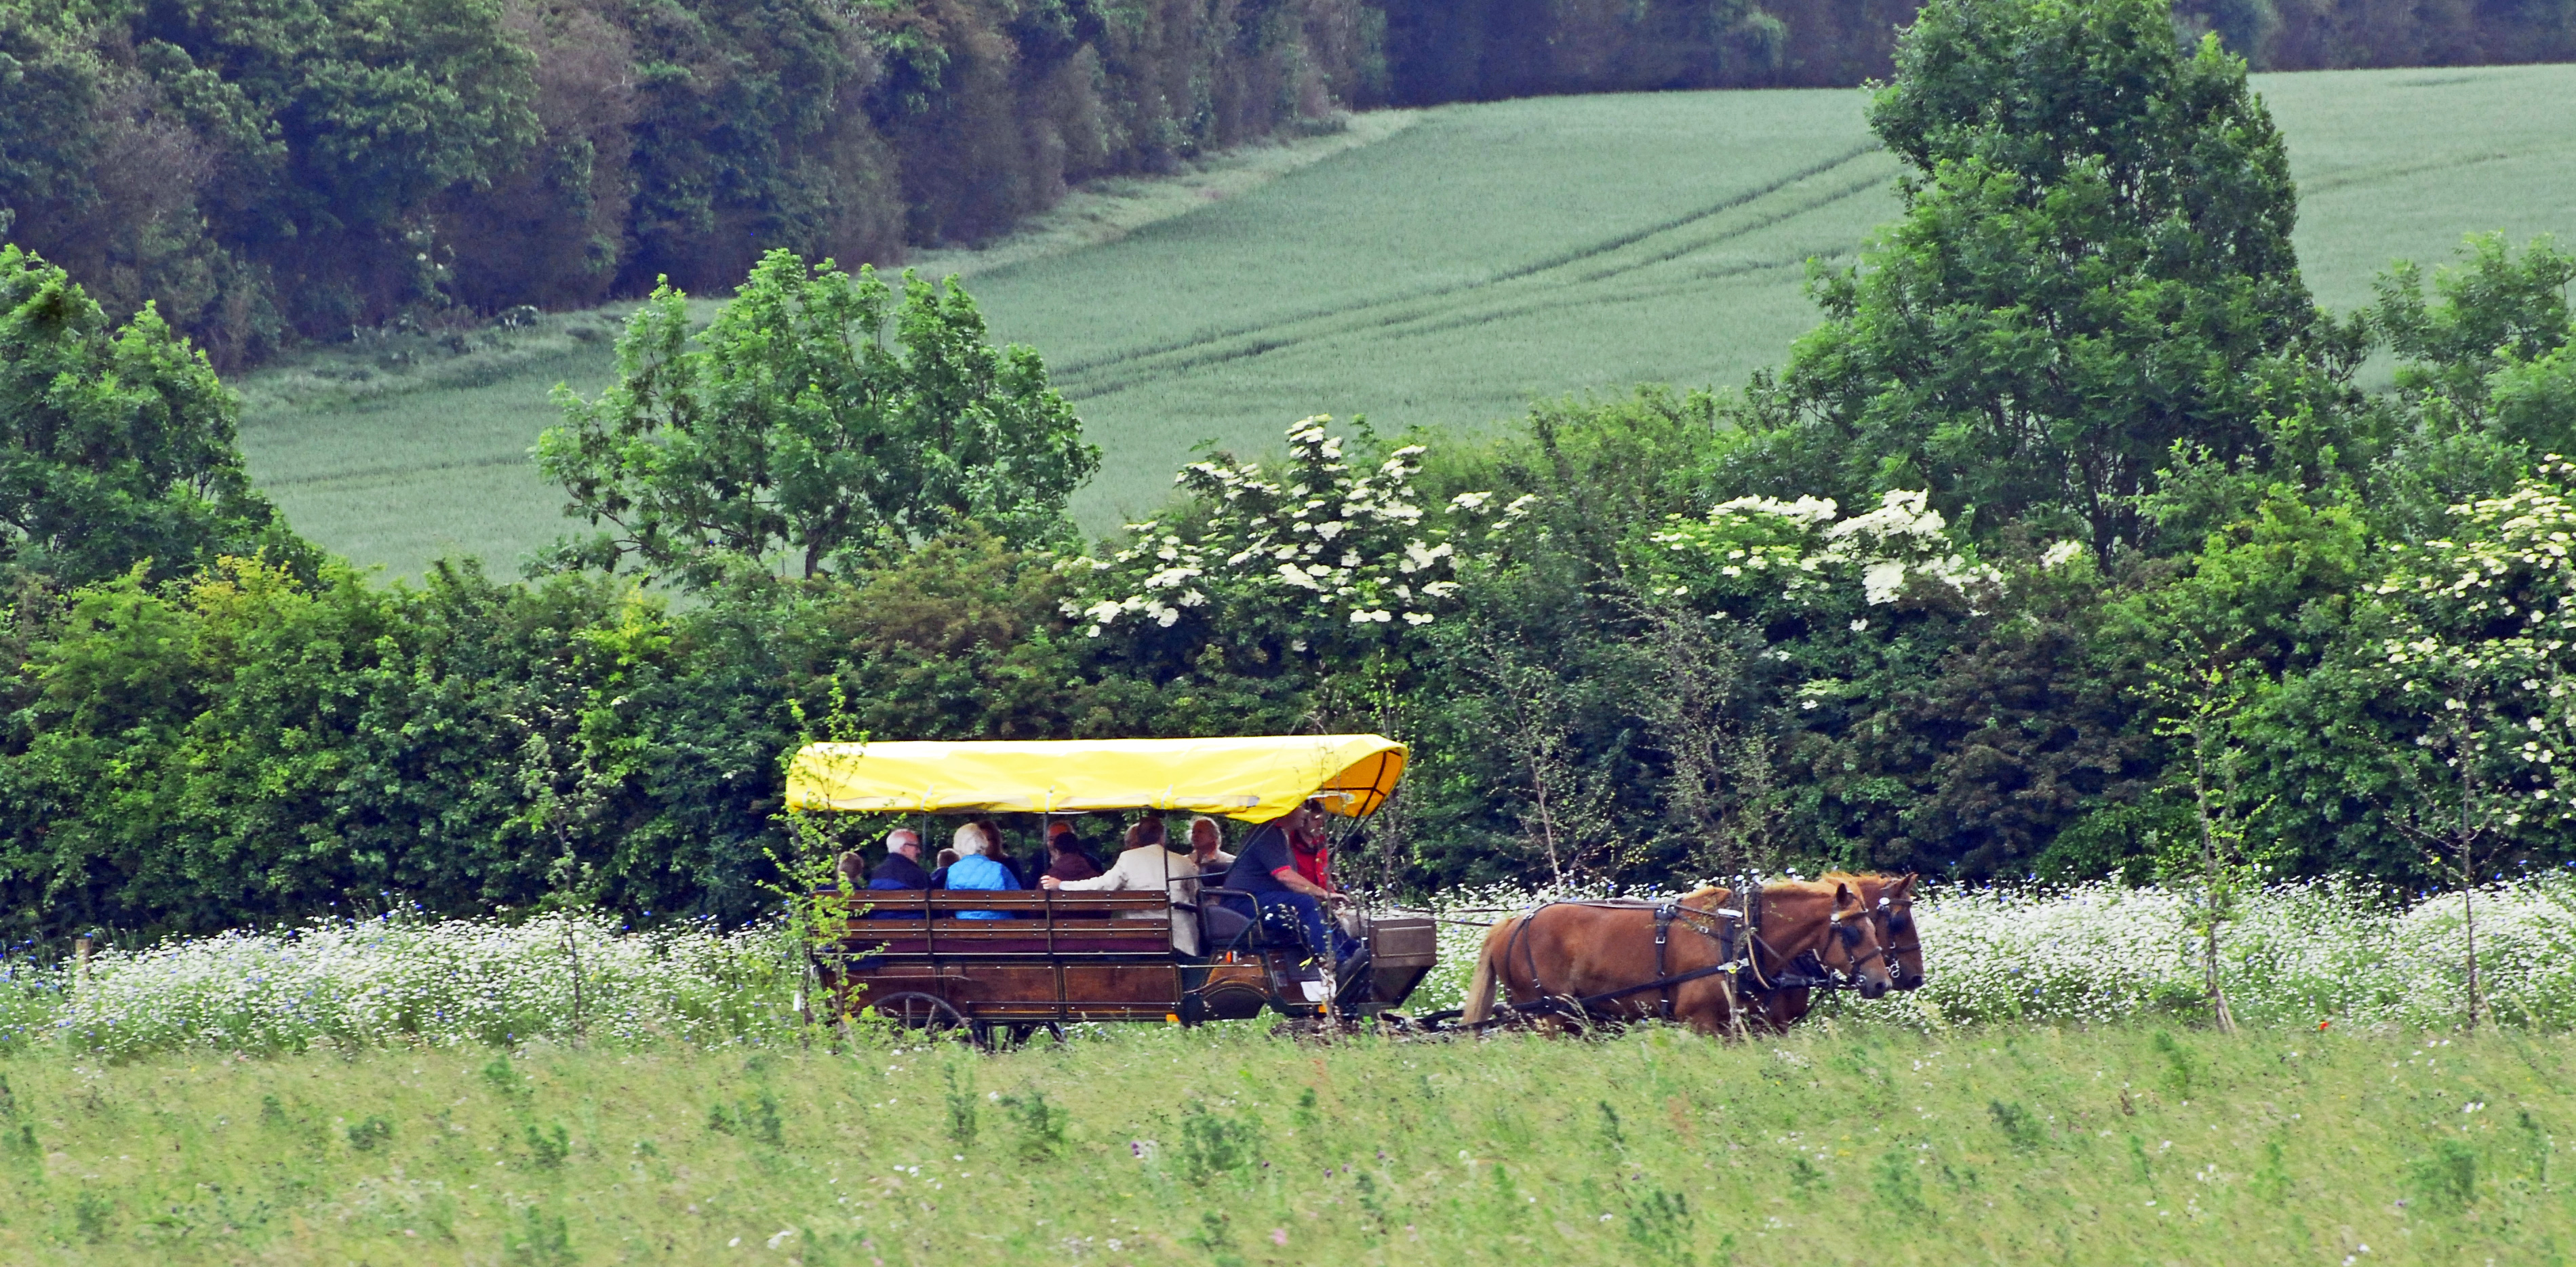 Carriage Ride at Clandon Wood